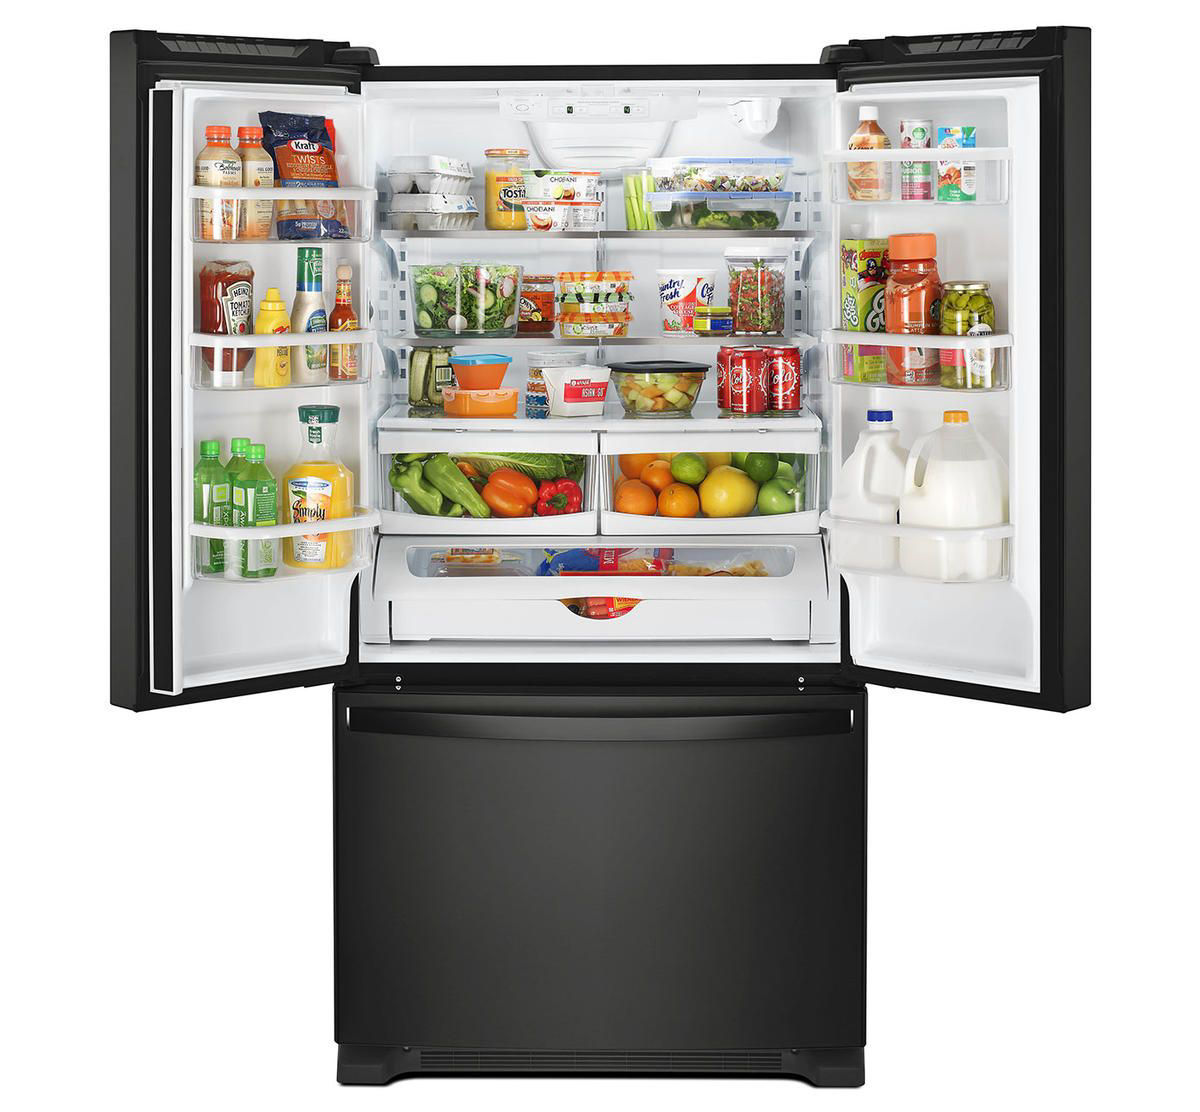 Picture of WHIRLPOOL FRENCH DOOR REFRIGERATOR